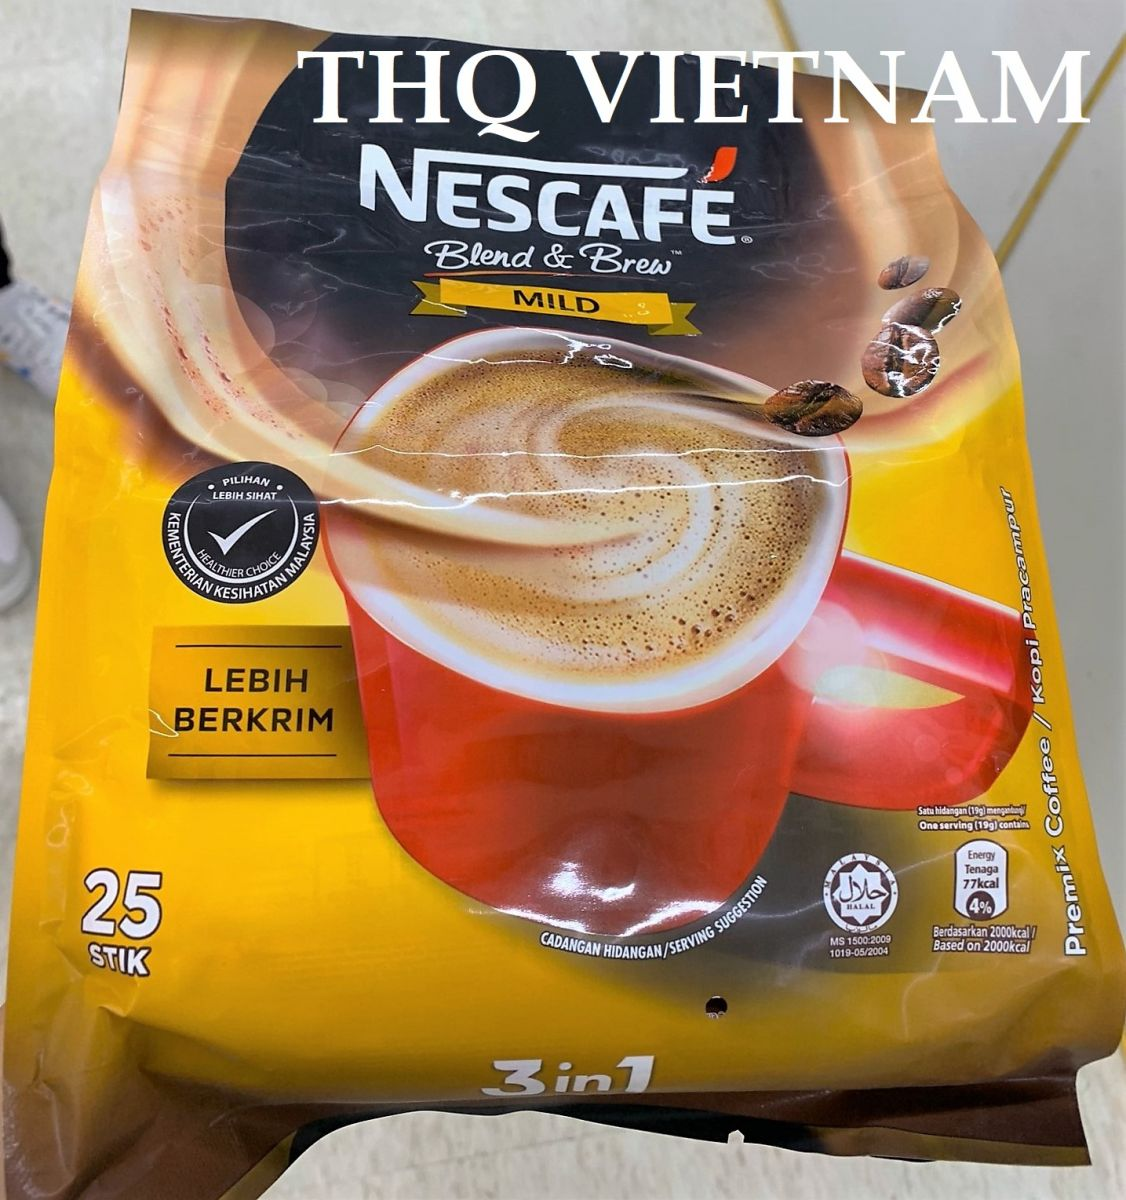 Nescafe 3in1 Blend&Brew; Mild/Rich 25Stik